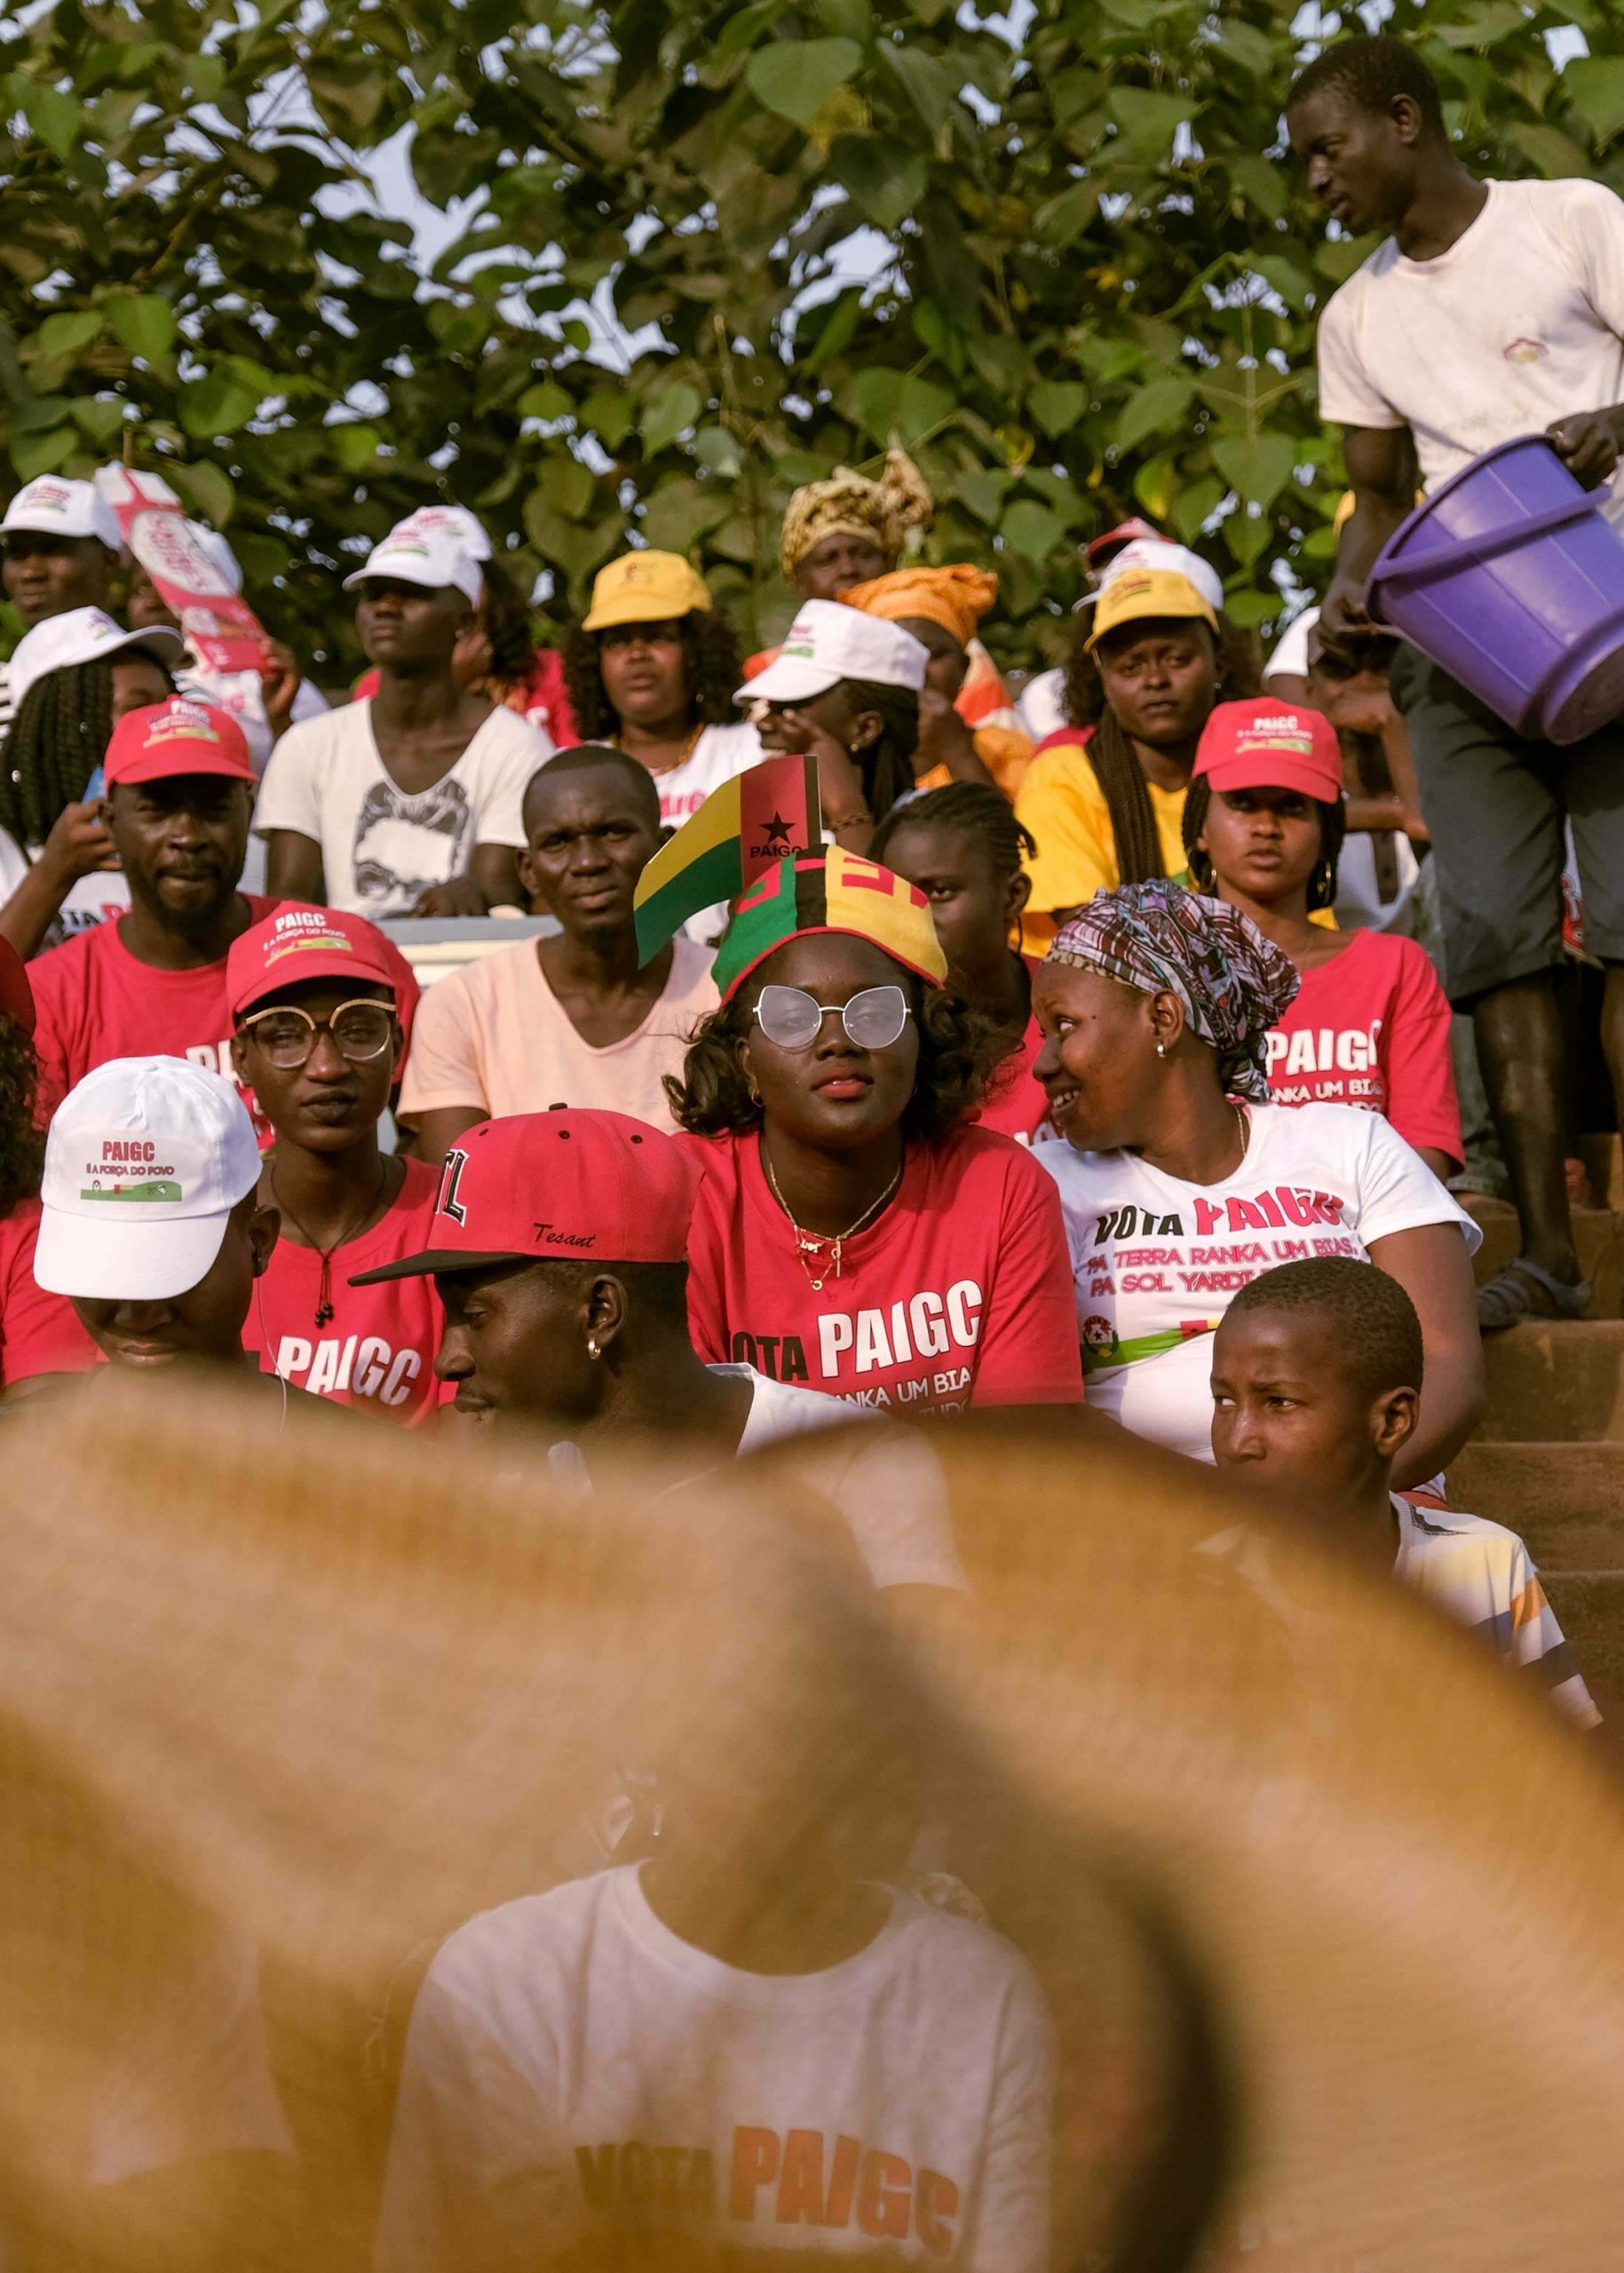 People rally for PAIGC in Bissau.